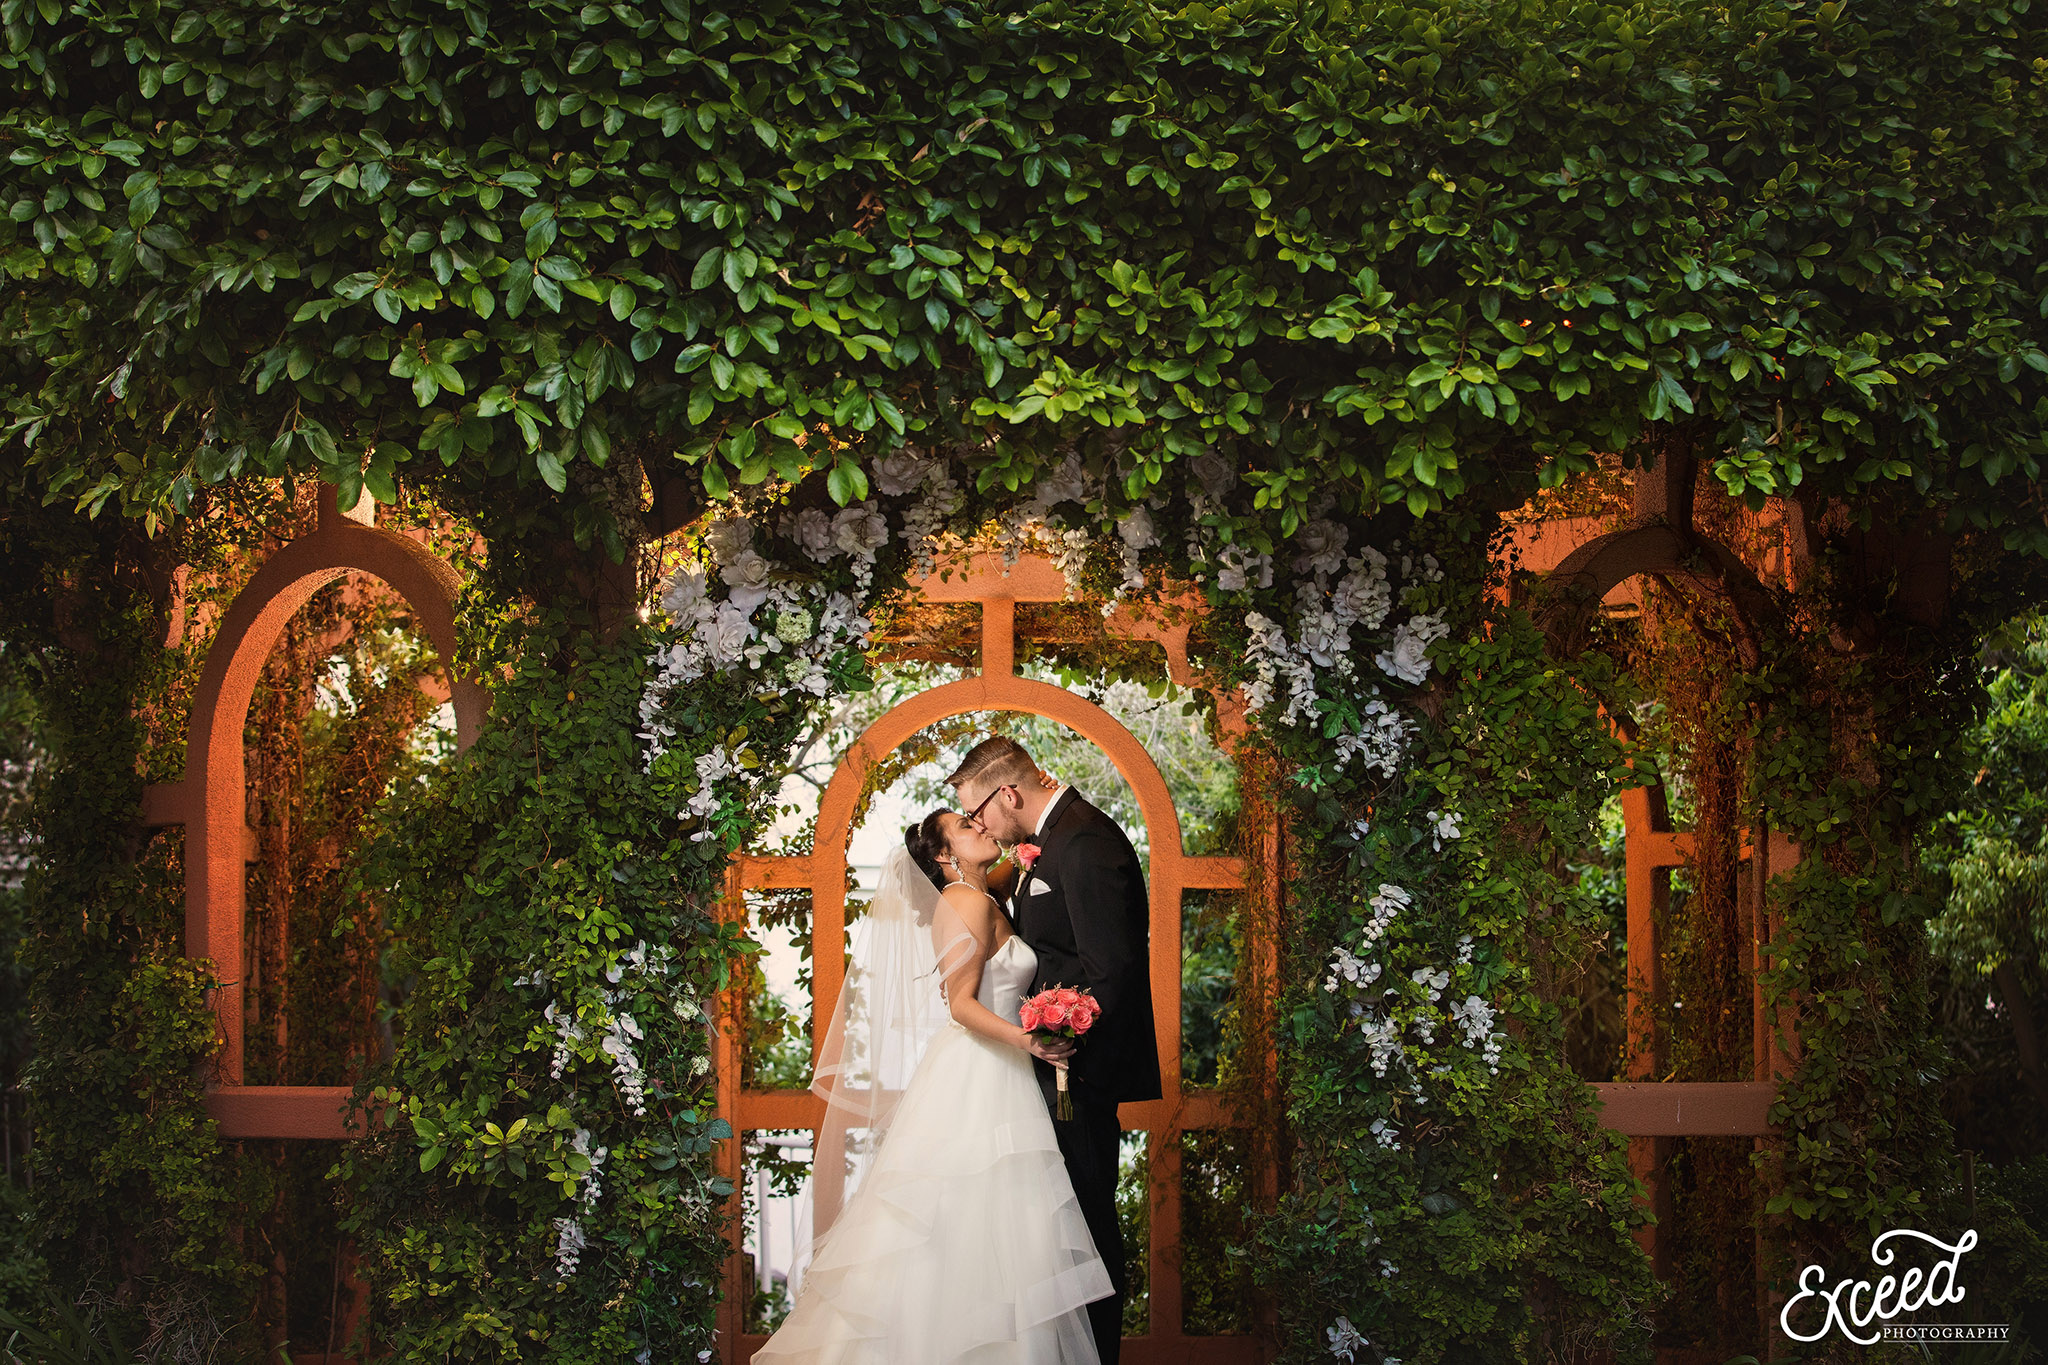 Wedding At The Garden Chapel Flamingo Las Vegas Alicia Scott